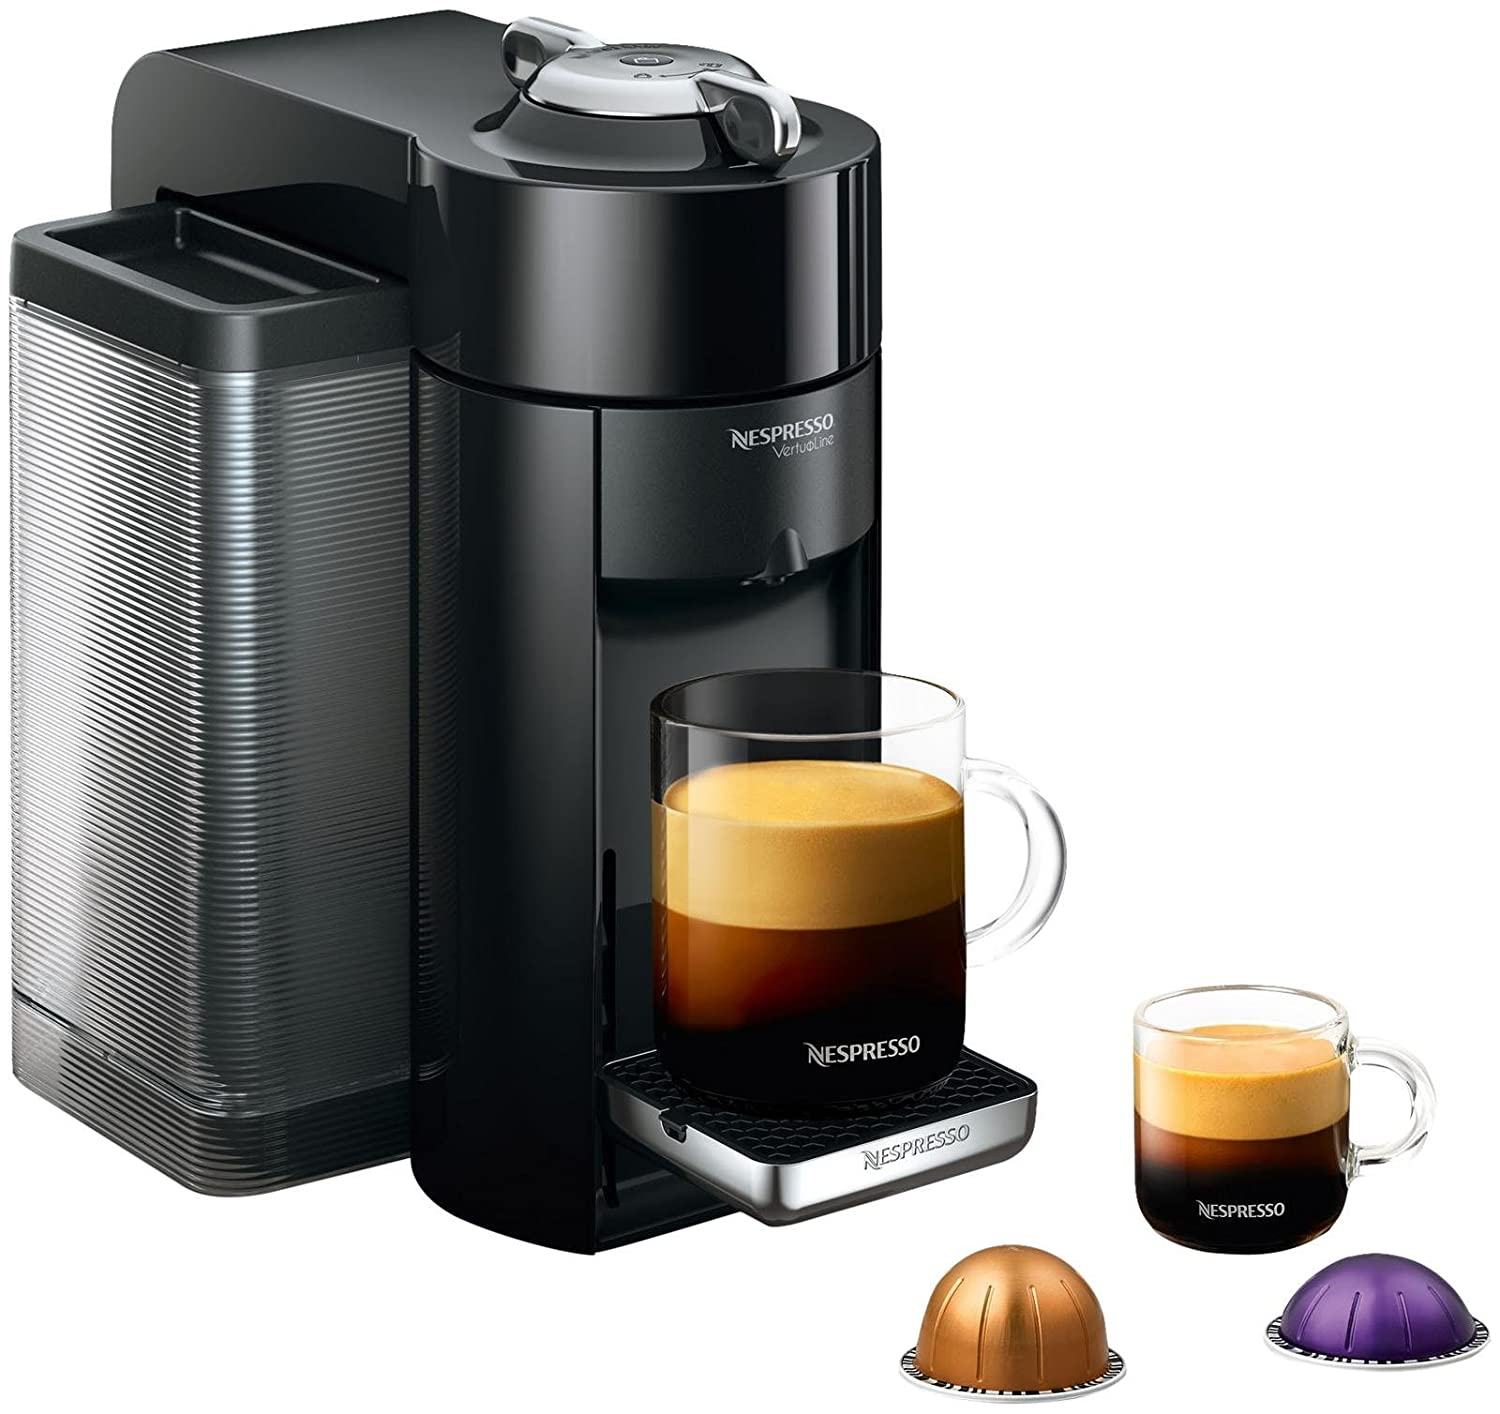 DeLonghi 608052-ENV135B Nespresso Vertuo Evoluo Coffee and Espresso Machine, Black De'Longhi